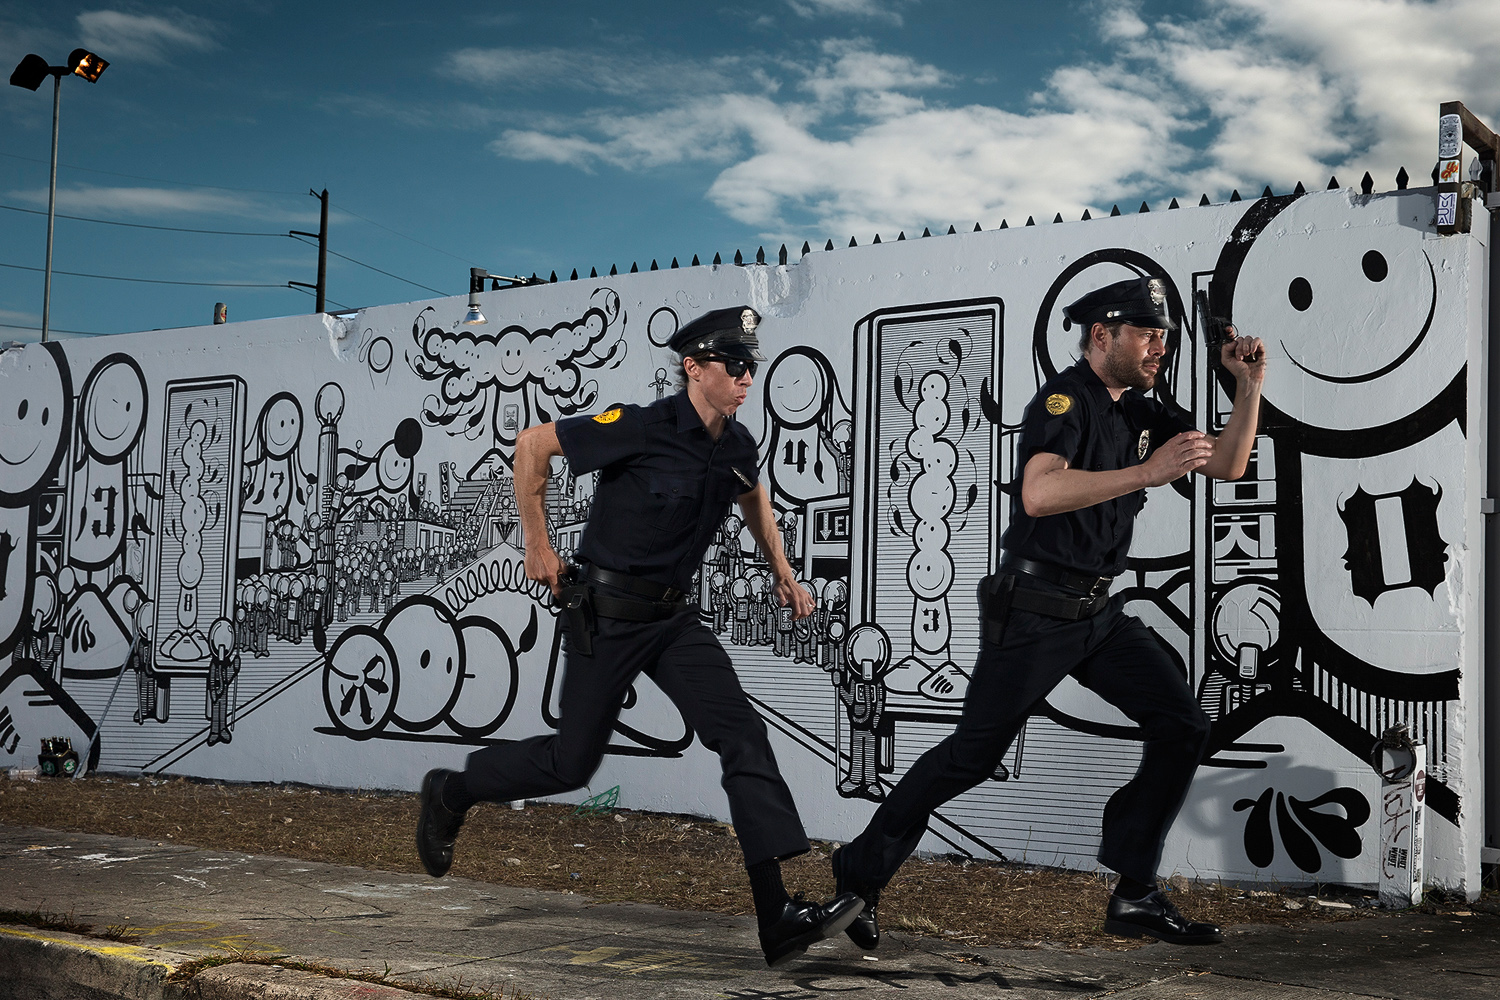 Søren Solkær, The London Police (England), Miami 2013, 2013. C-print, 24 x 36 inches. Courtesy of the artist